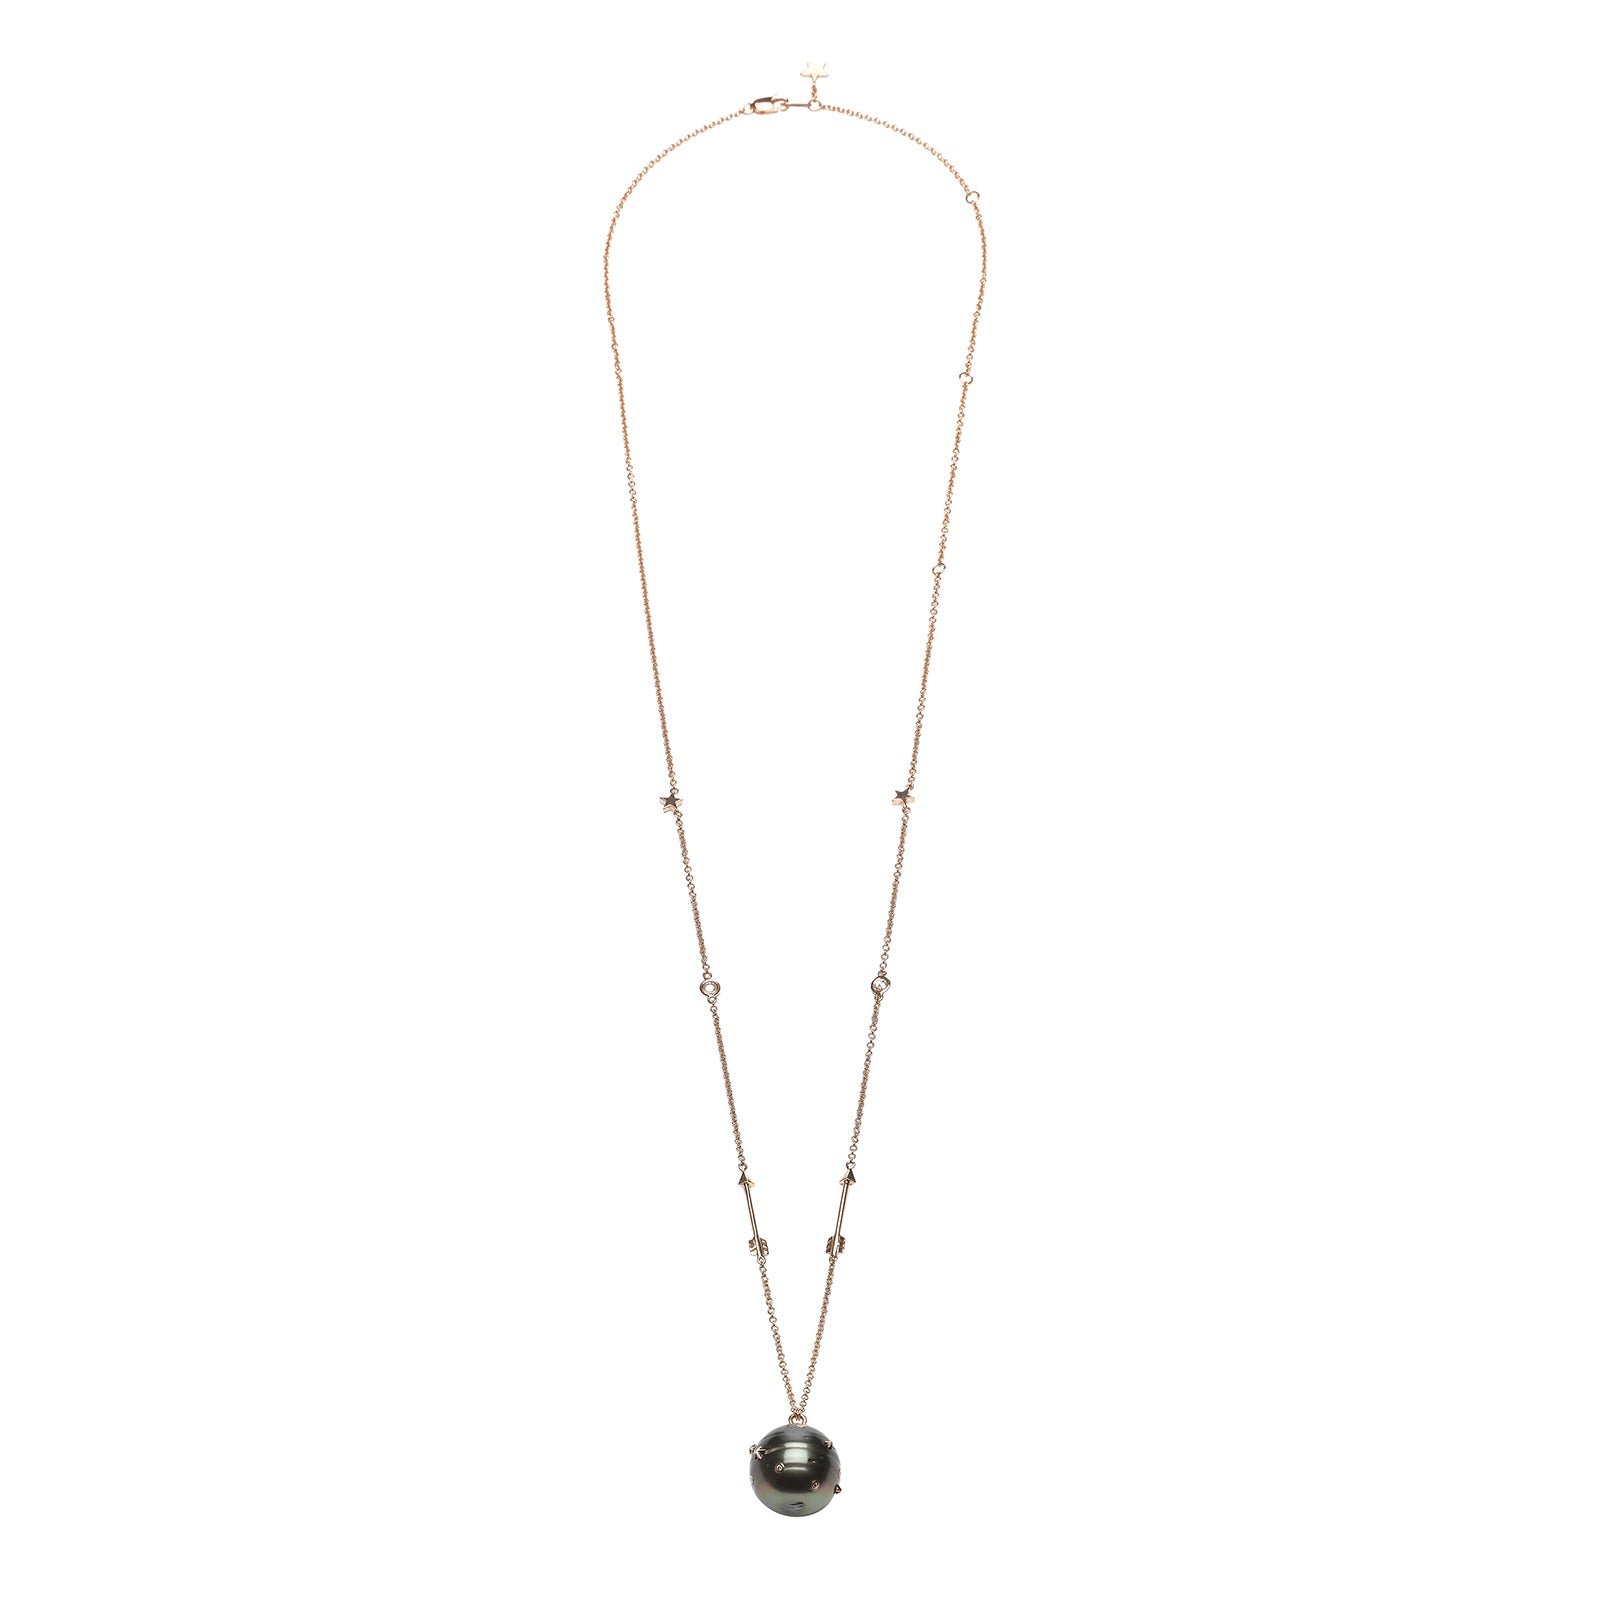 Bibi van der Velden Tahitian Pearl Necklace - Necklaces - Broken English Jewelry